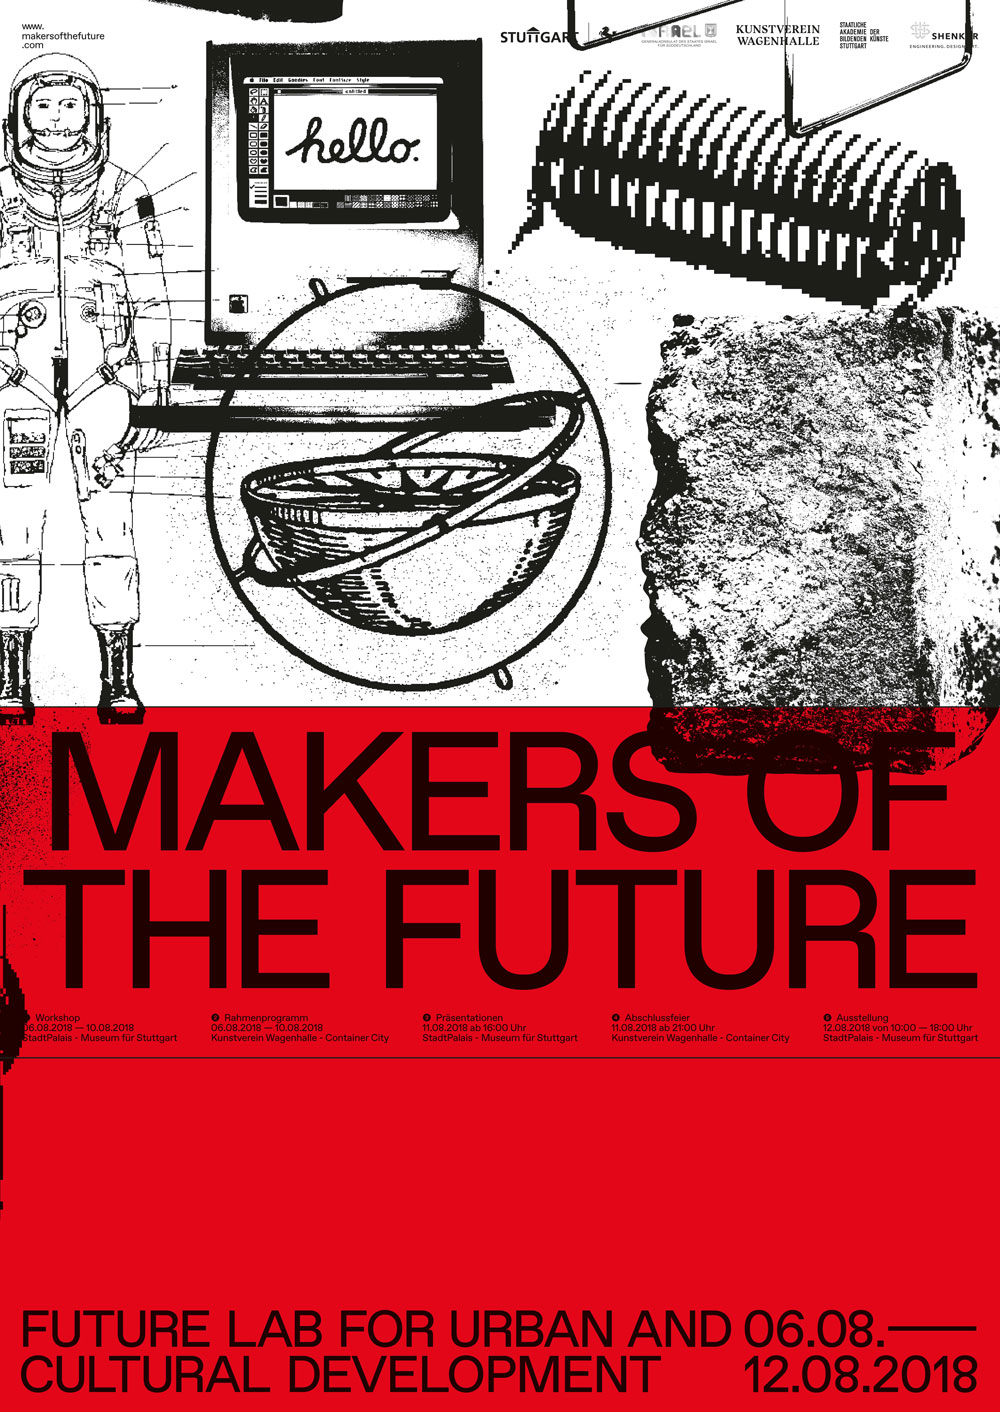 #Container City - Makers of the Future